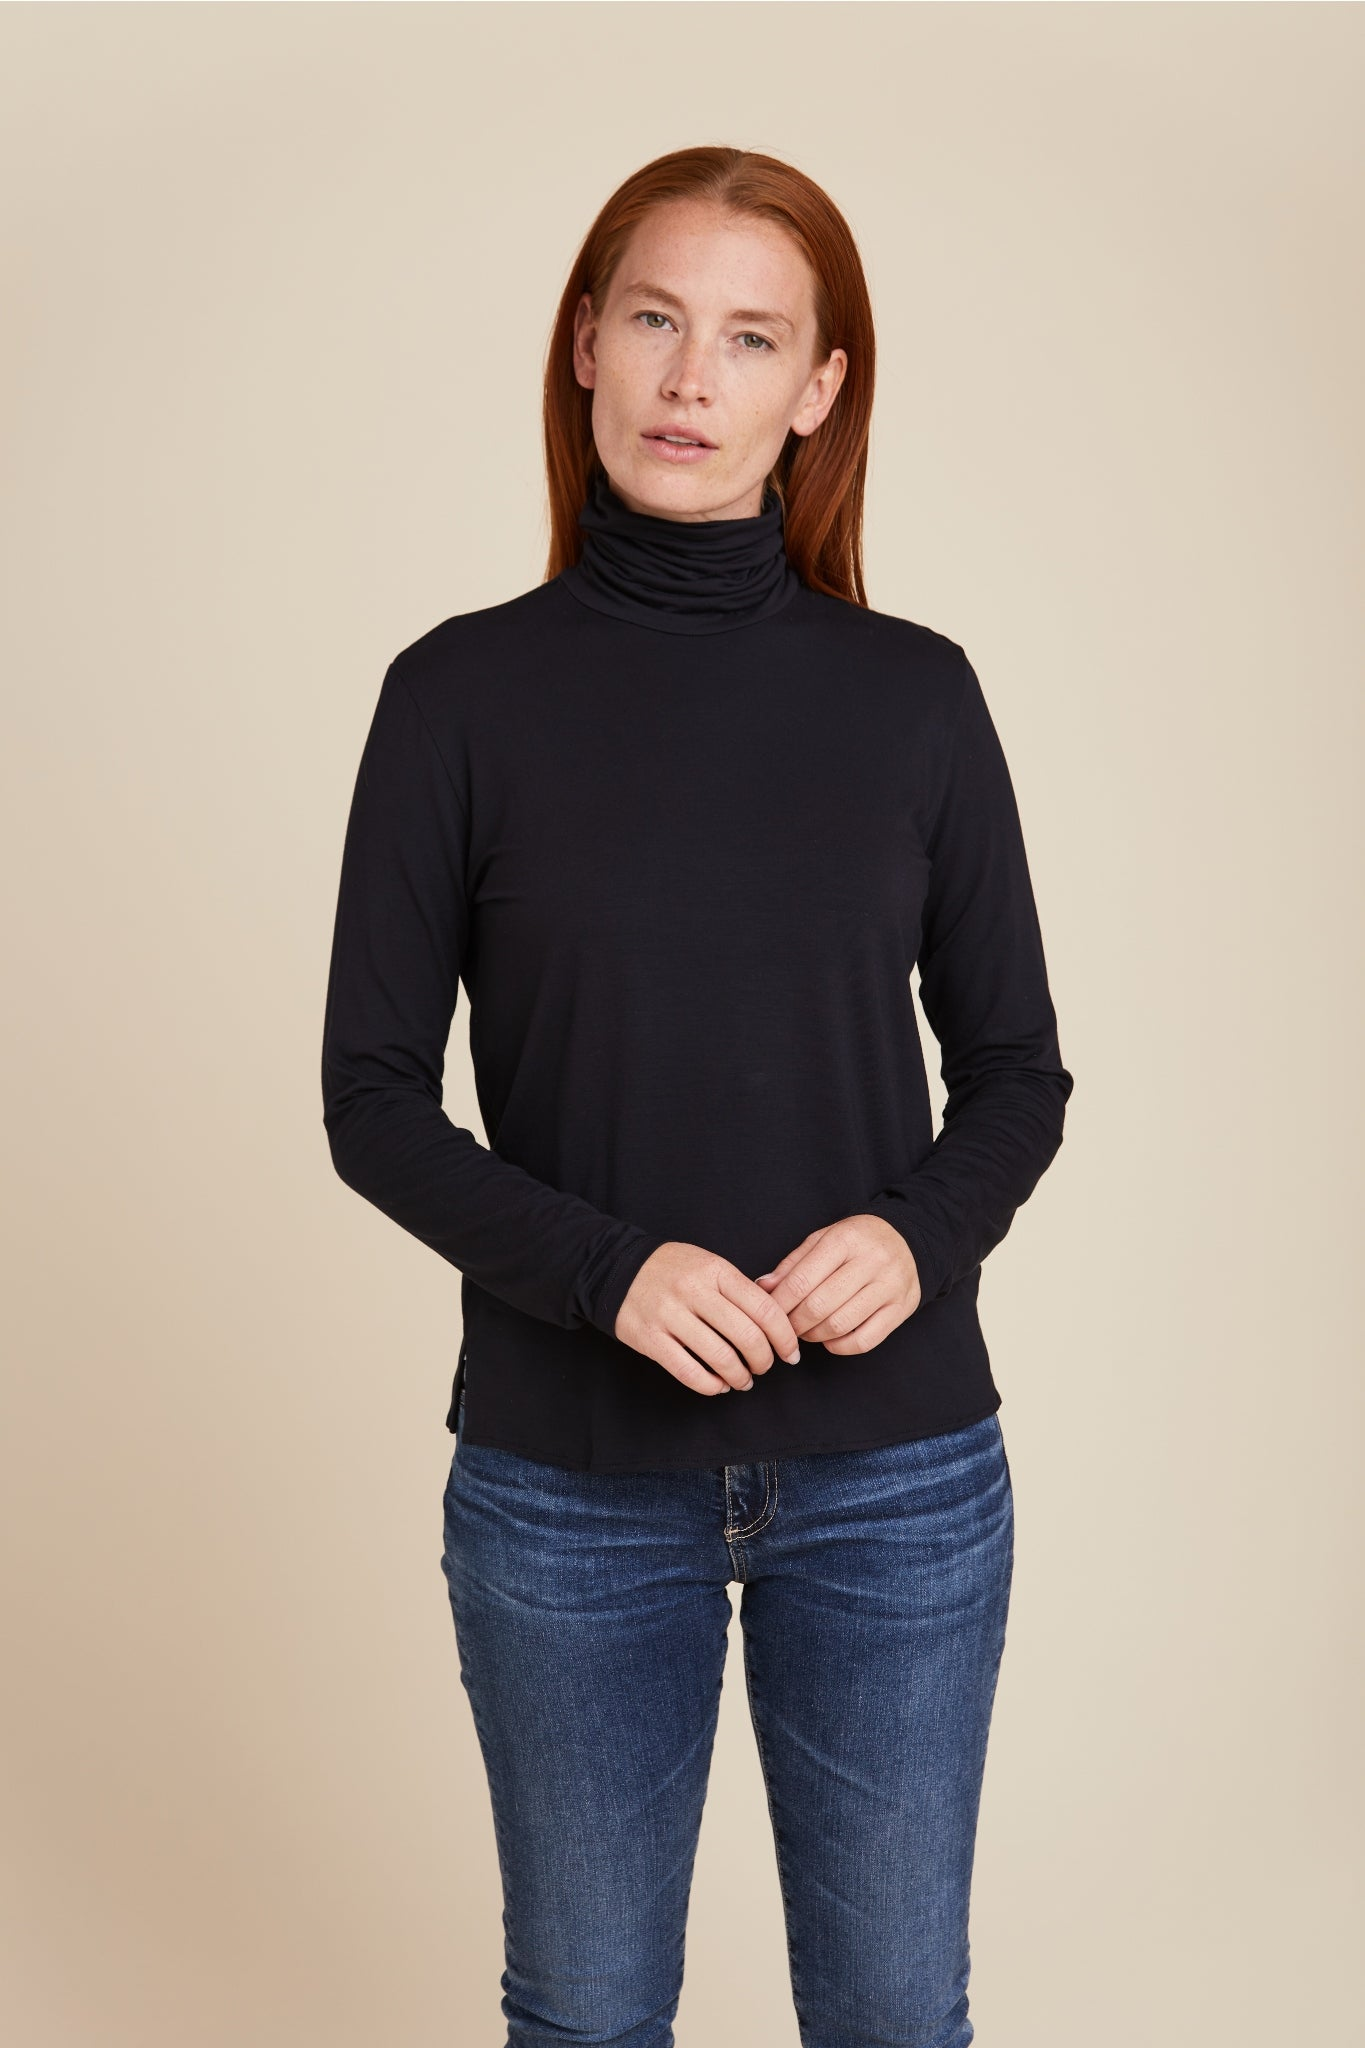 SOFT TOUCH SEMI RELAXED L/S TURTLENECK - MAJESTIC FILATURES